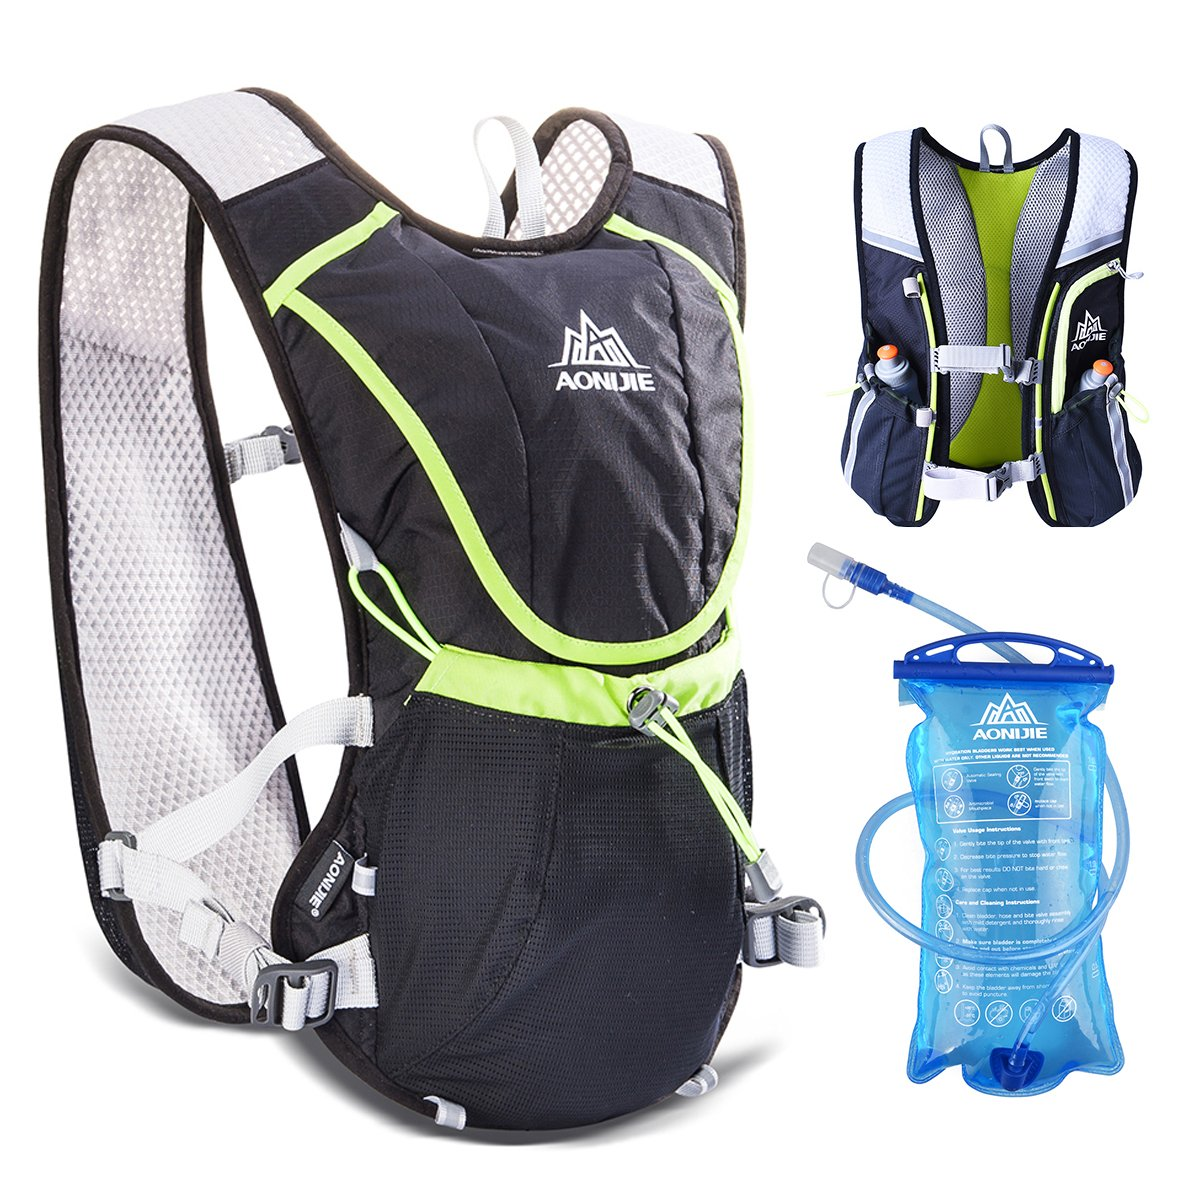 Amazon.com : JEELAD 8L Running Race Hydration Backpack Hydration Vest for Marathon Hiking Cycling (Black (8L), with 1.5L Water Bladder) : Sports & Outdoors